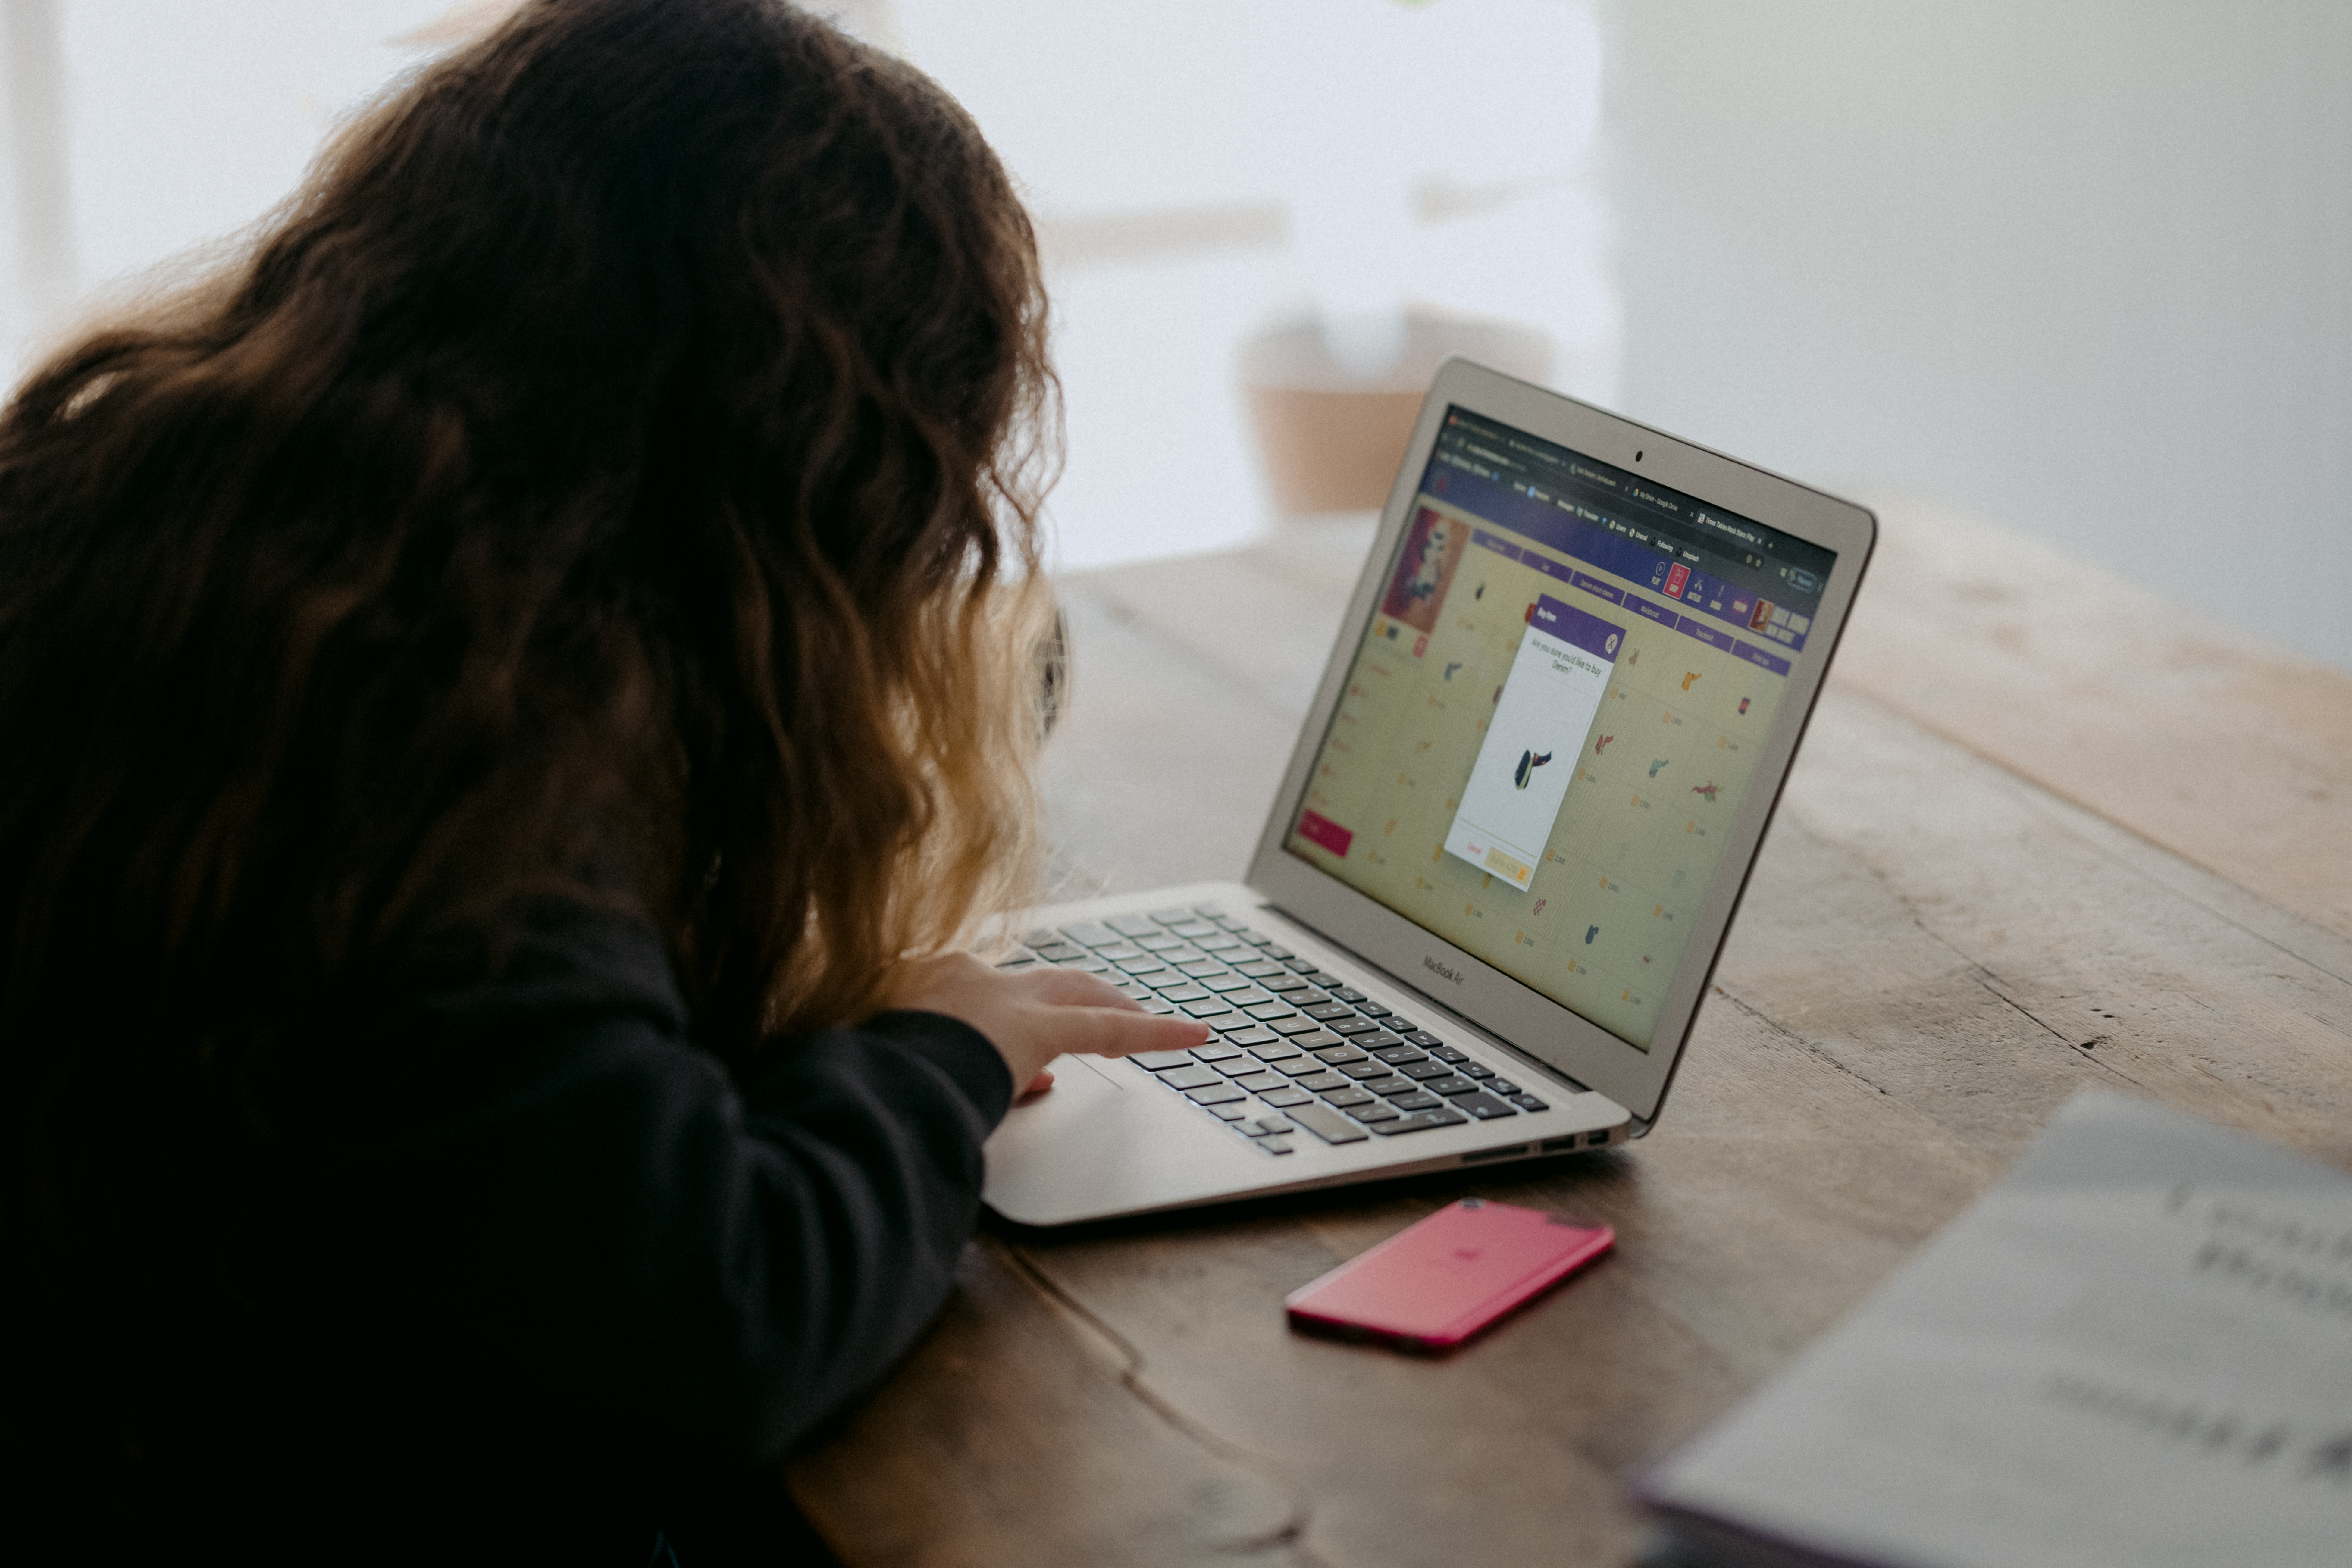 Young girl working on a laptop at a table with an iPhone and book nearby